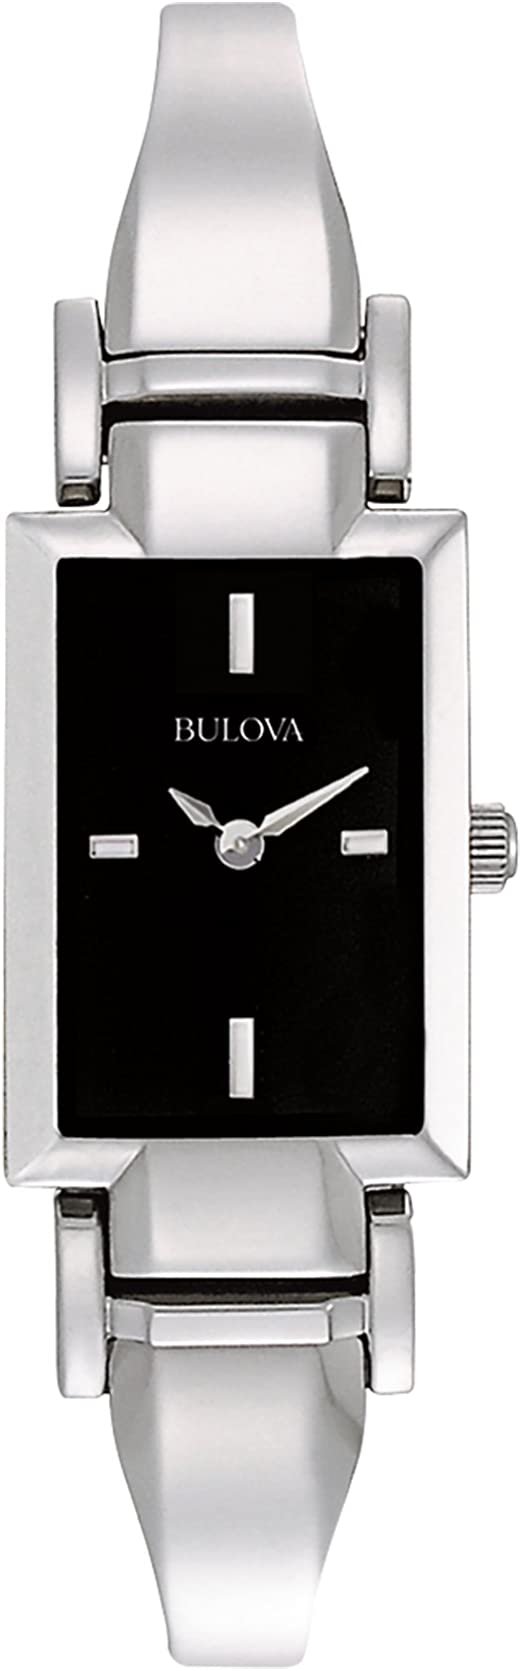 enfocar Antecedente implicar  Amazon.com: Bulova 96L138 Reloj de pulsera de acero inoxidable para mujer:  Bulova: Watches